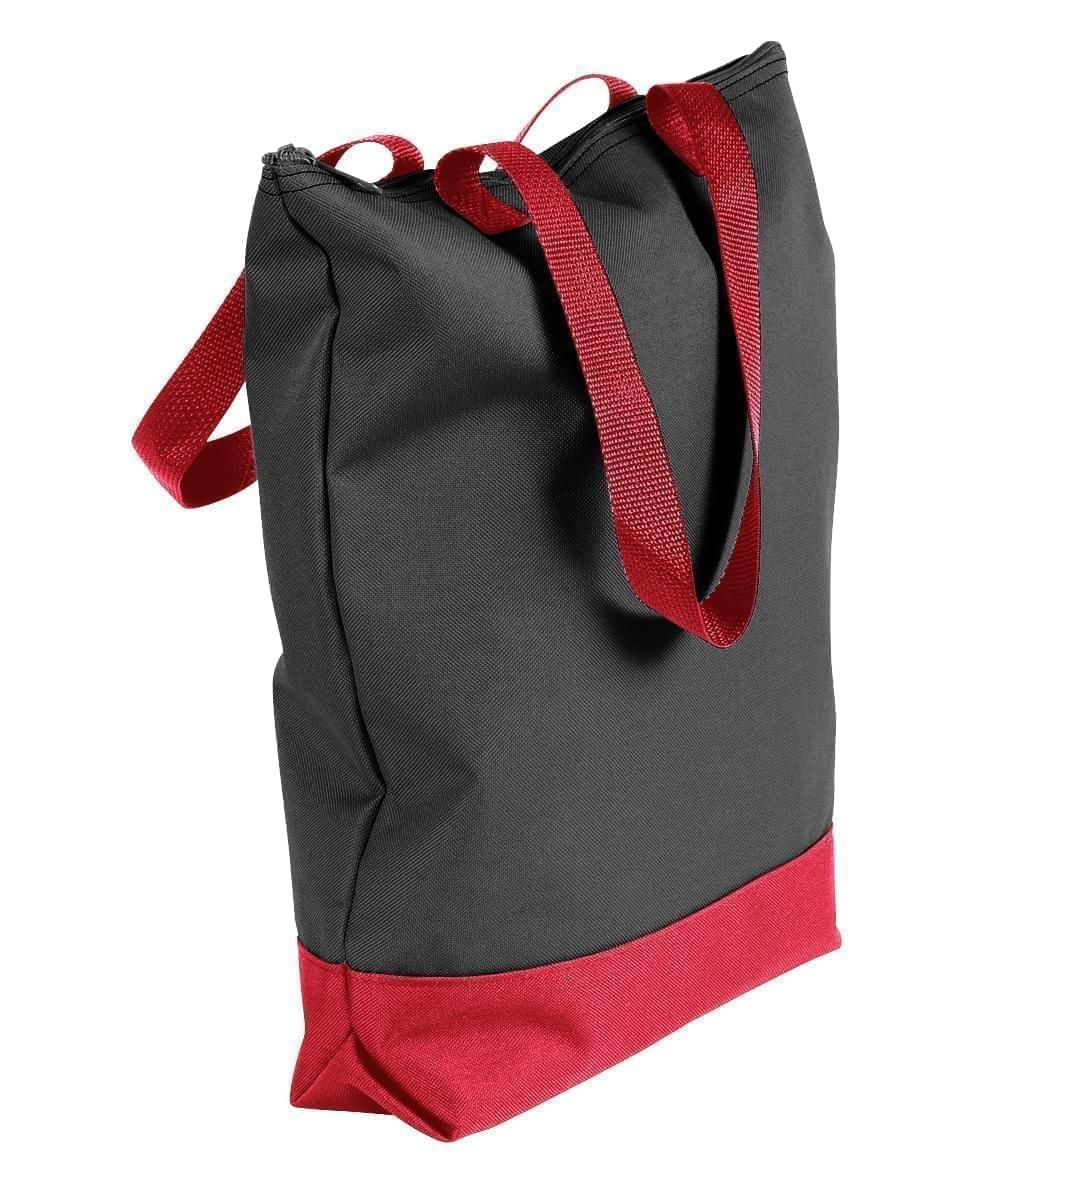 USA Made Canvas Portfolio Tote Bags, Black-Red, 1AAMX1UAH2